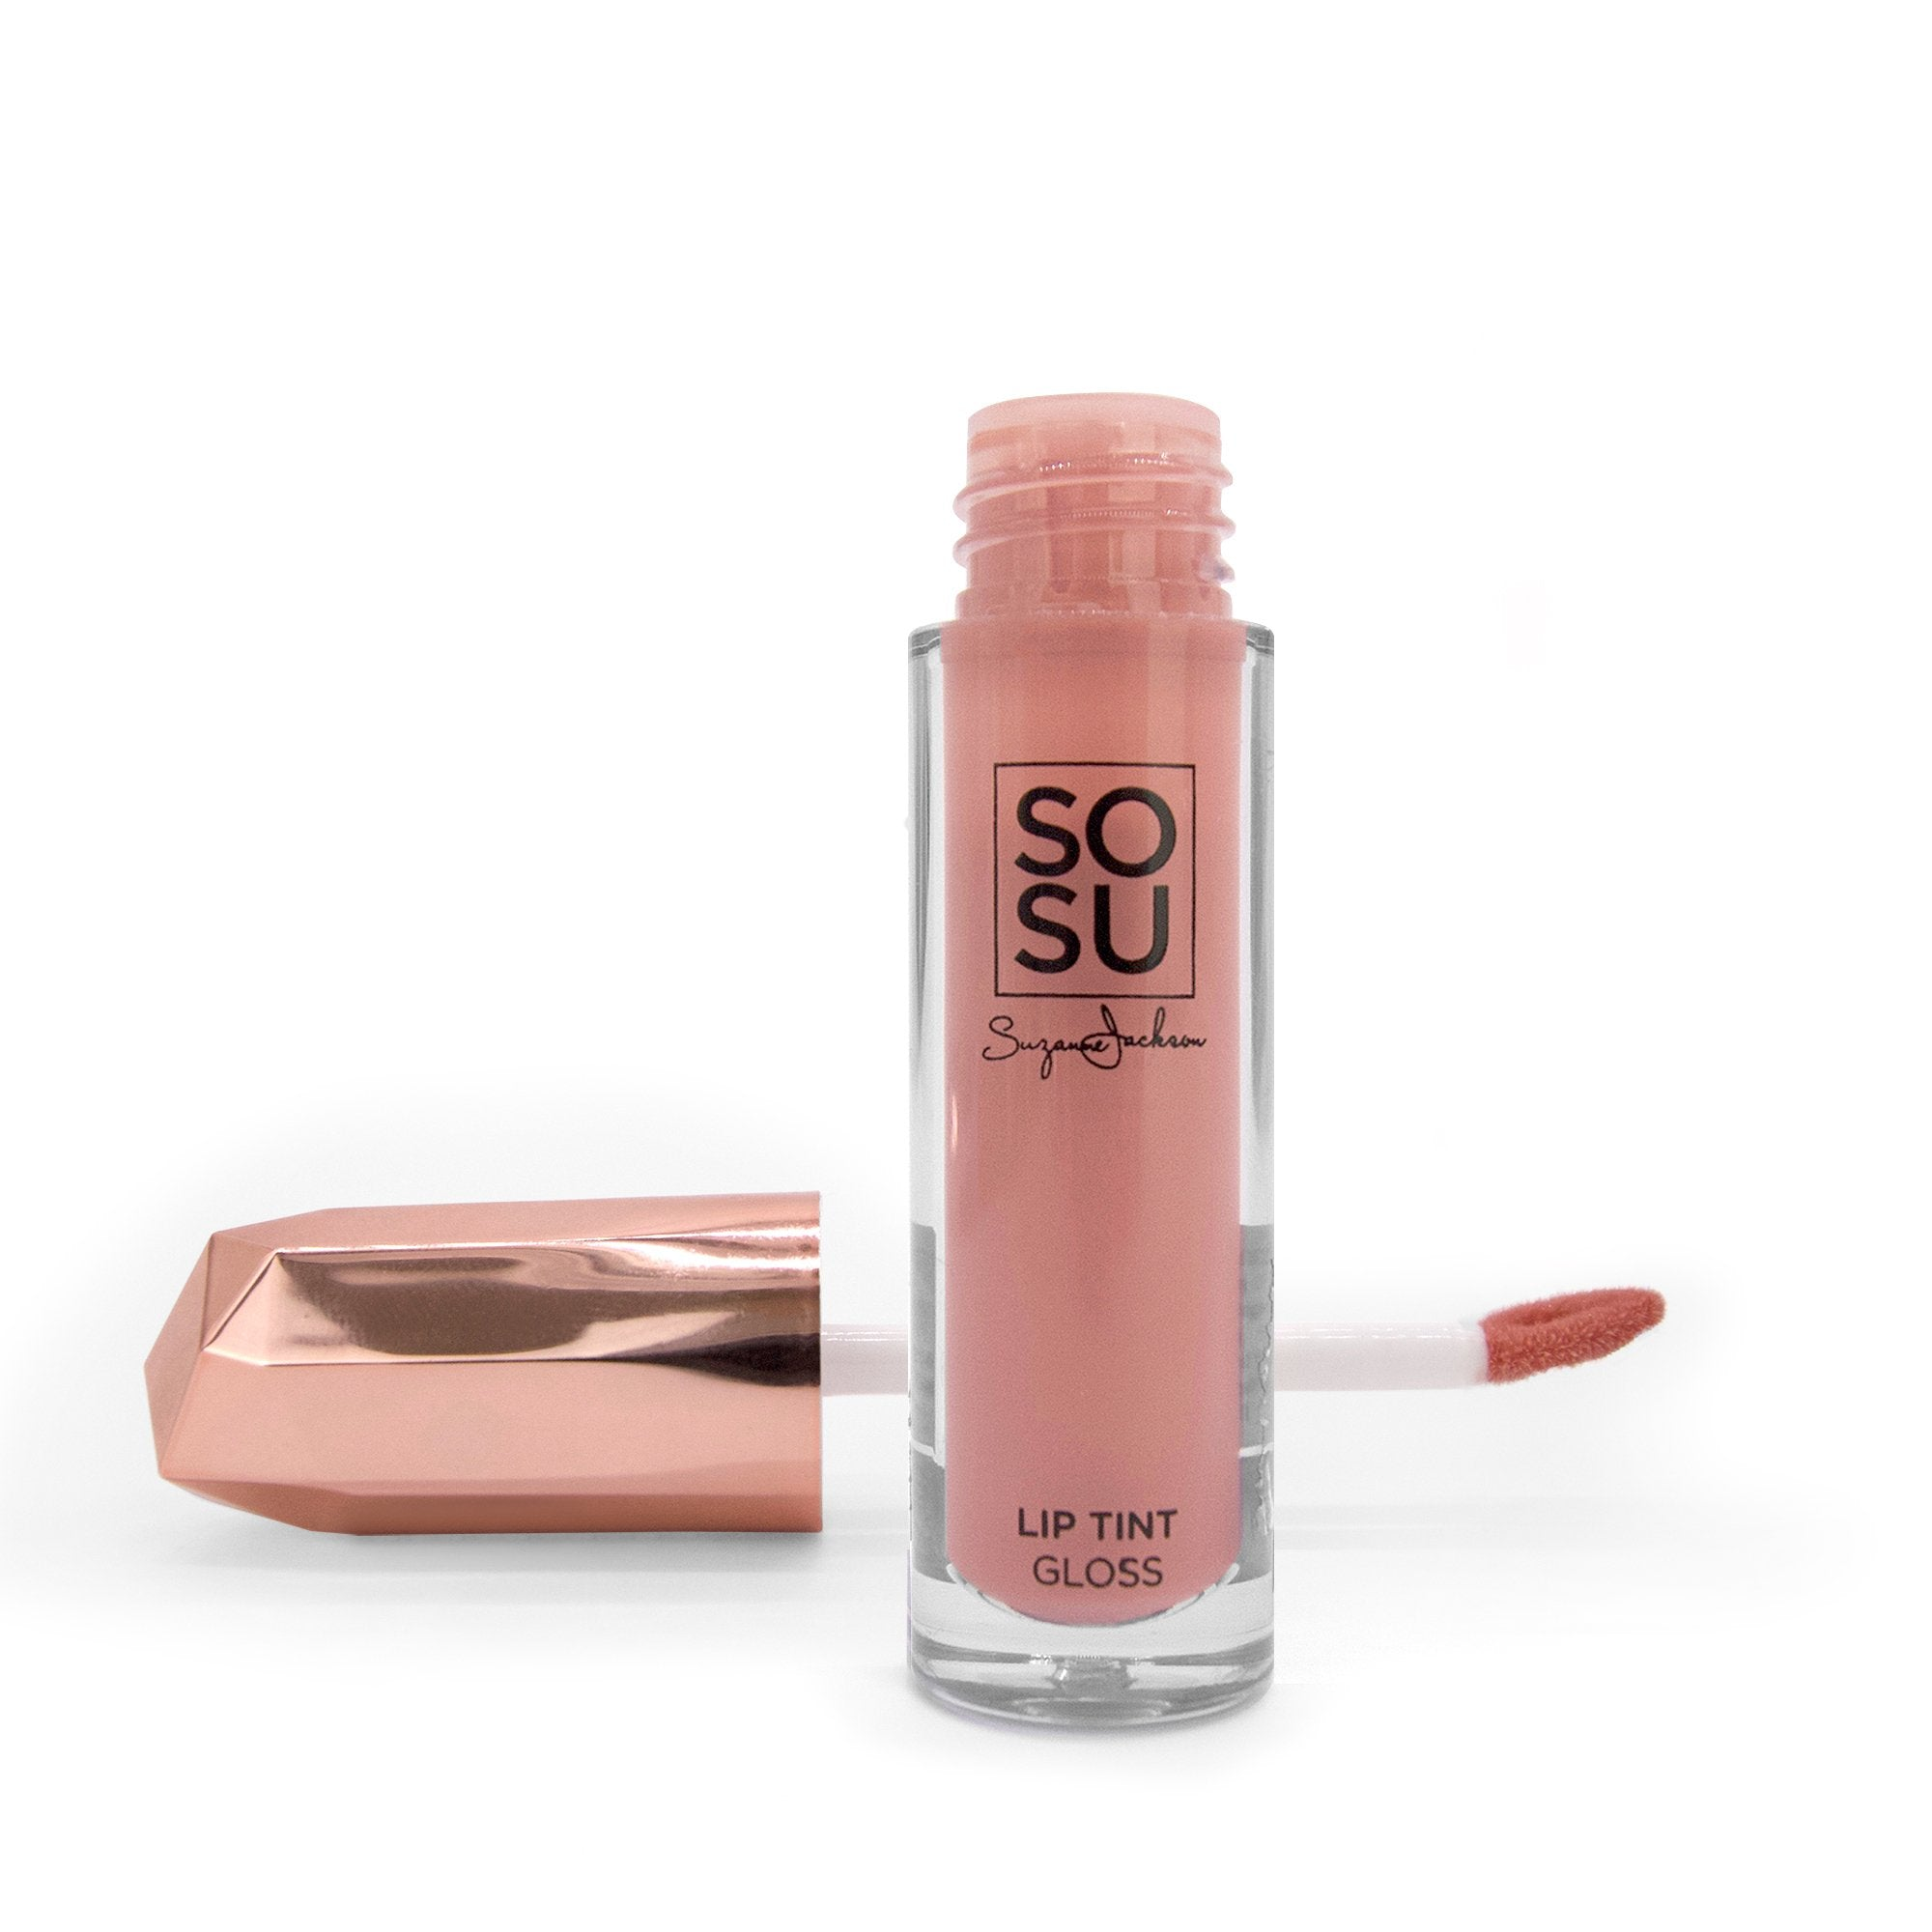 Sosu Too Busy / Lip Tint Gloss